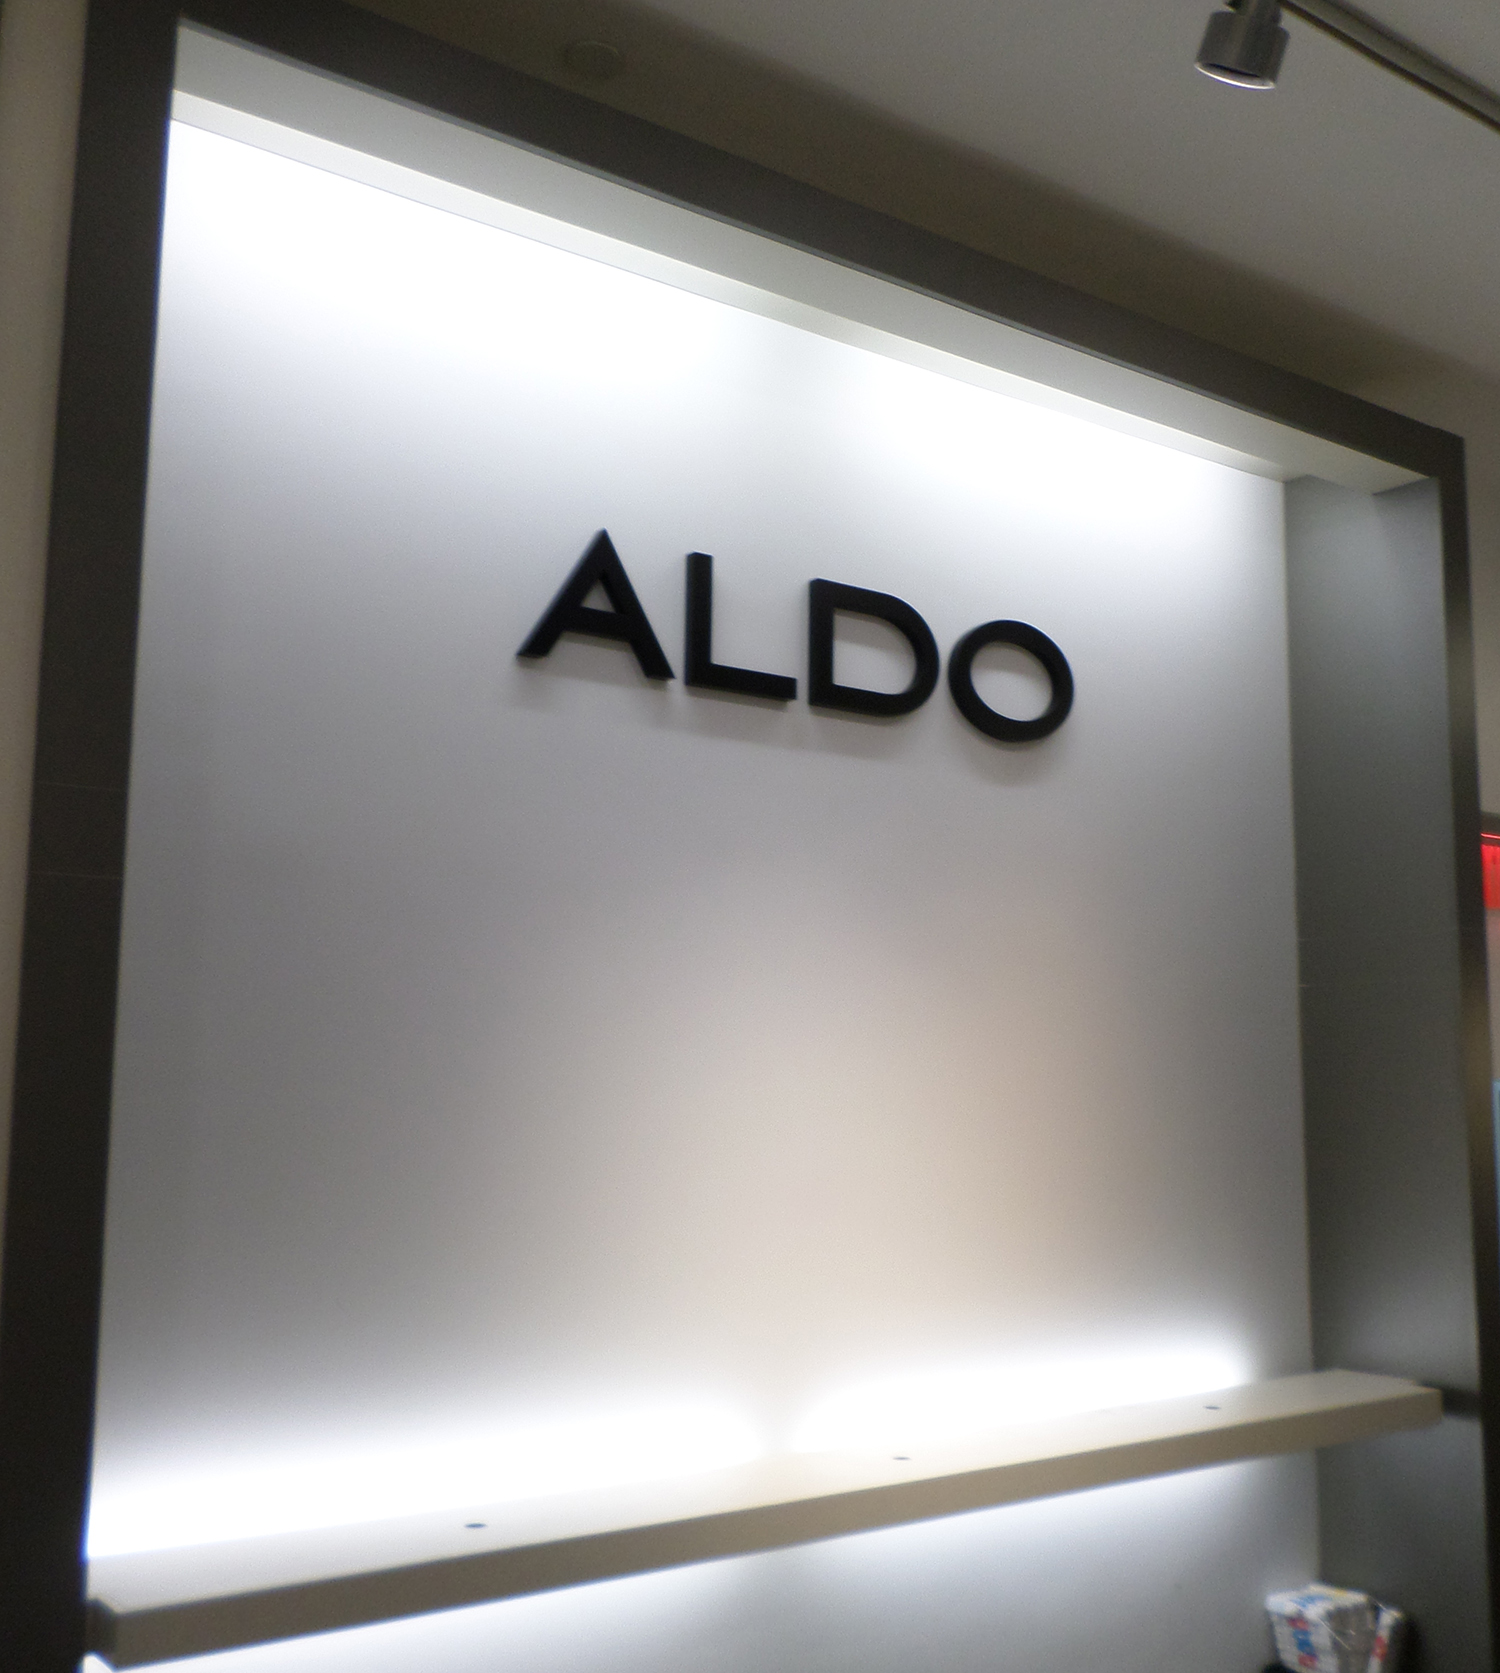 Dimensional Letter sign For ALDO, Westfield Valleyfair Mall